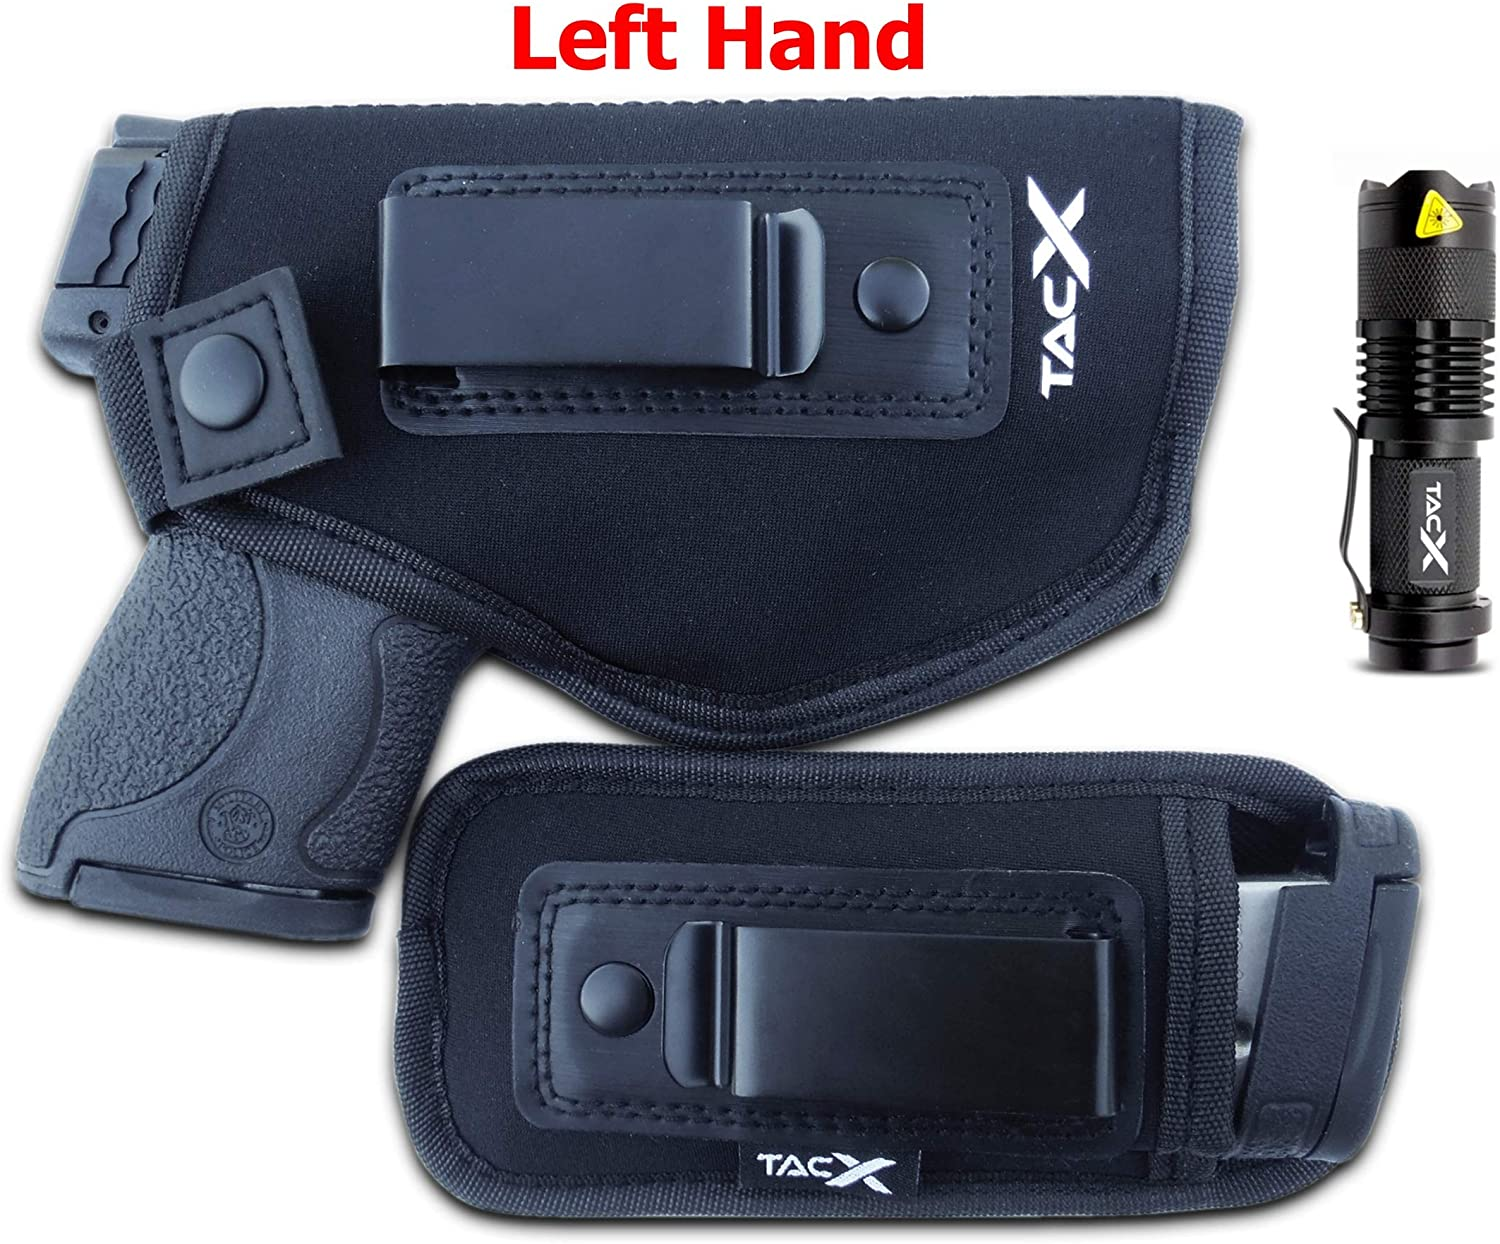 TacX Pro Gear Universal IWB Holster | Concealed Carry | Inside The Waistband Bundle | Bonus Spare Magazine Pouch | Flexible, Breathable, Neoprene | S&W M&P Shield 9/40 1911 XDS Taurus Glock